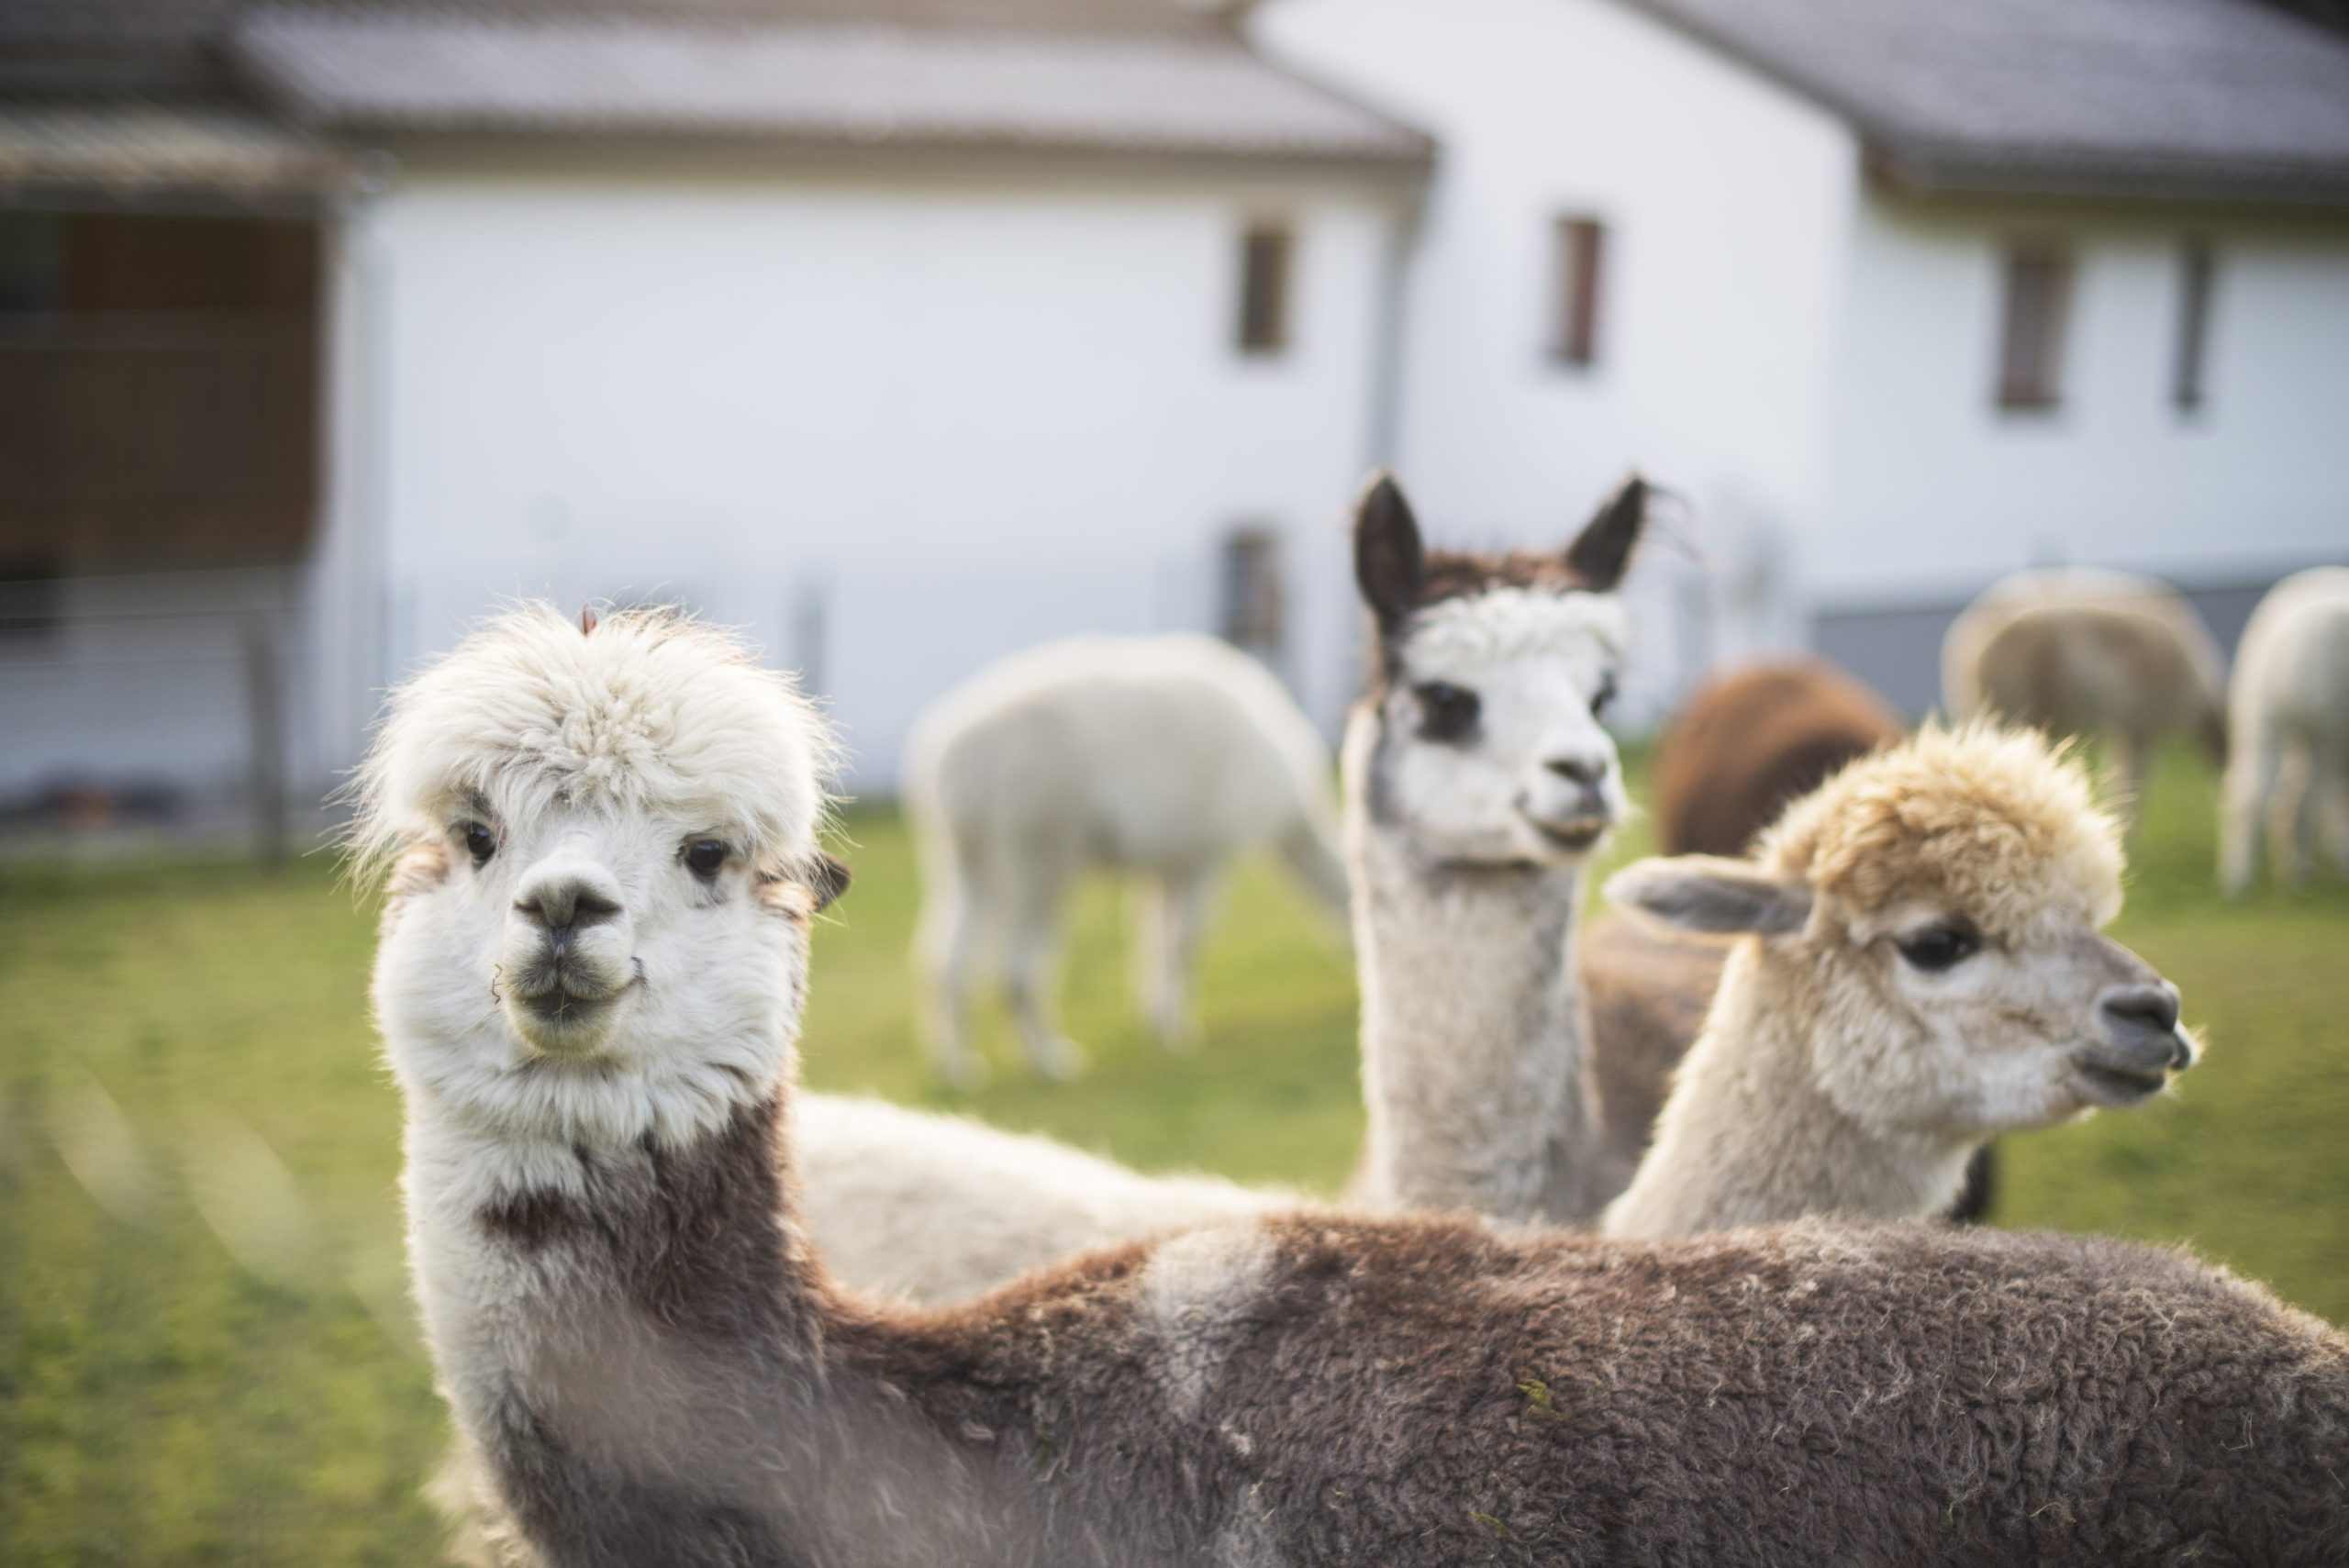 Young alpacas graze and feed on a lawn